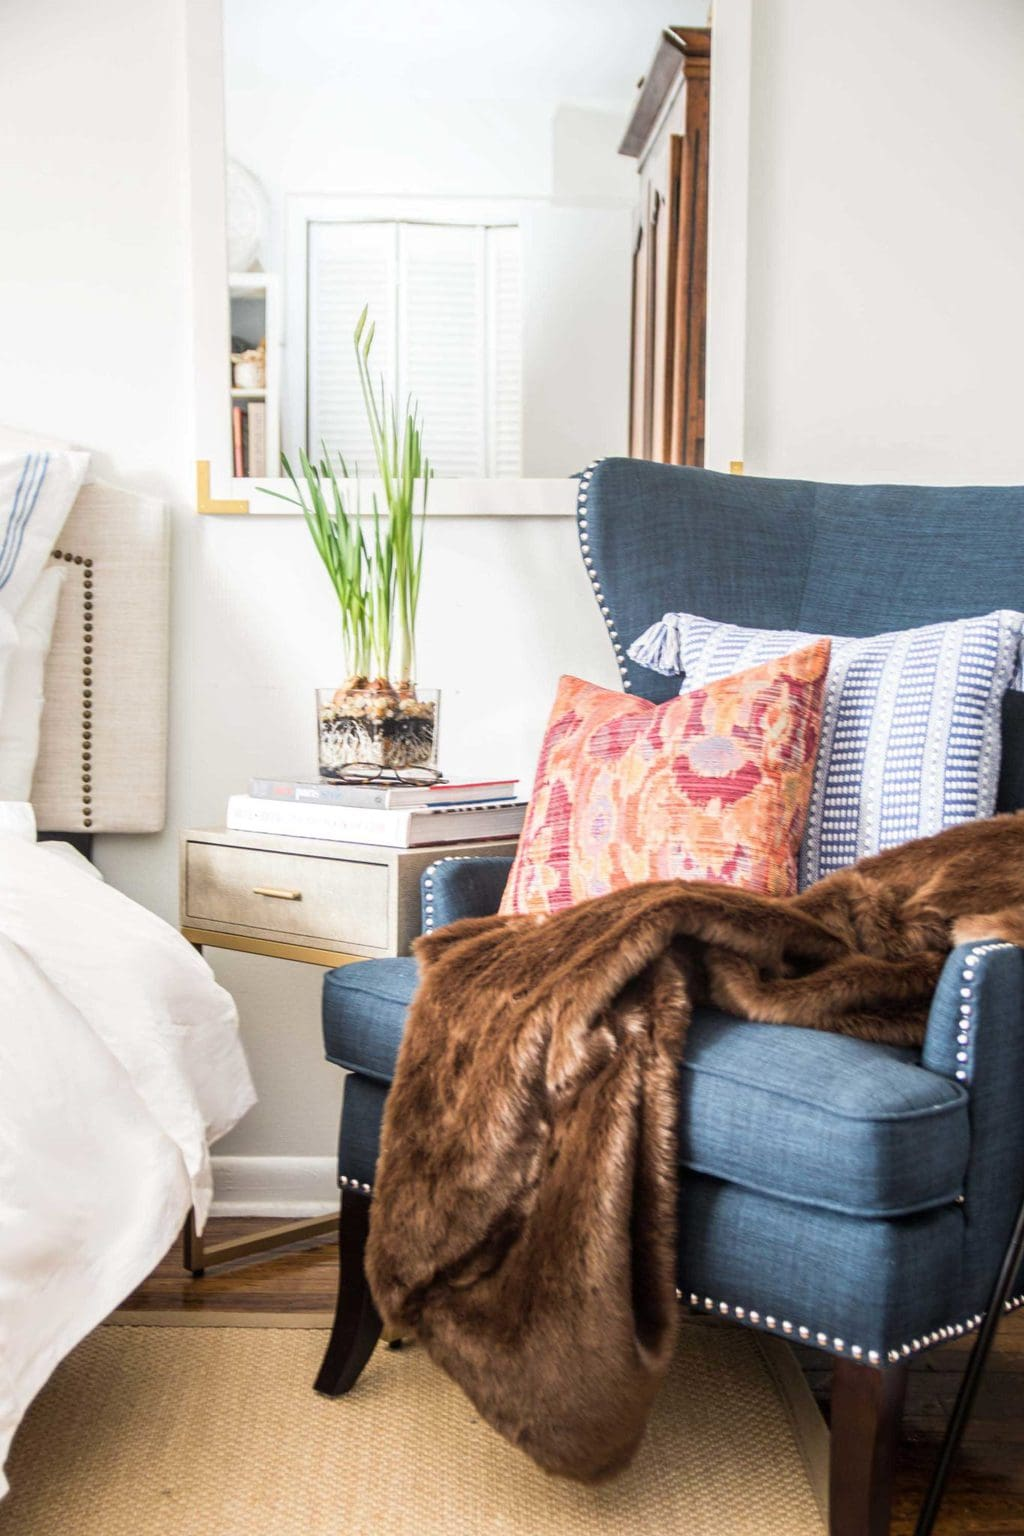 chair for bedroom ergonomic drafting canada why your needs an accent thou swell i filled the with a brown faux fur throw seriously best ve ever felt and cozy ikat pillow to add perfect pop of red